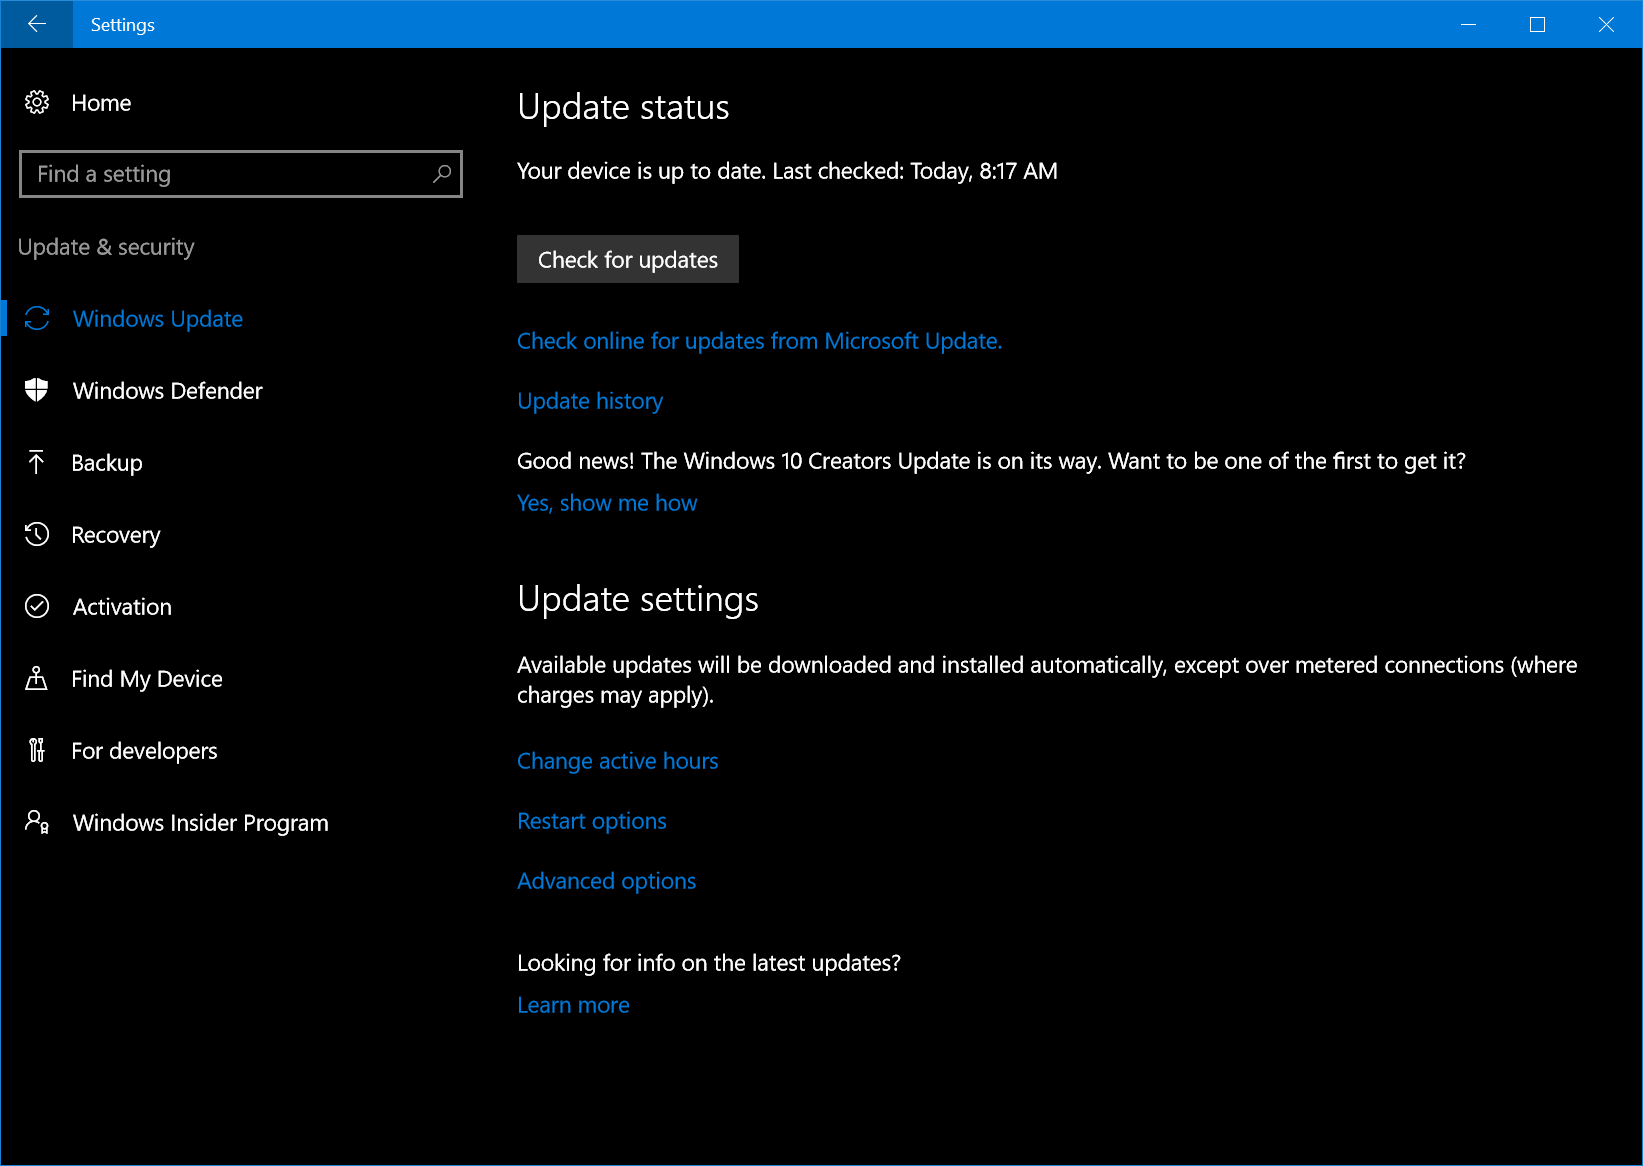 Screenshot of the Windows Update screen experience.